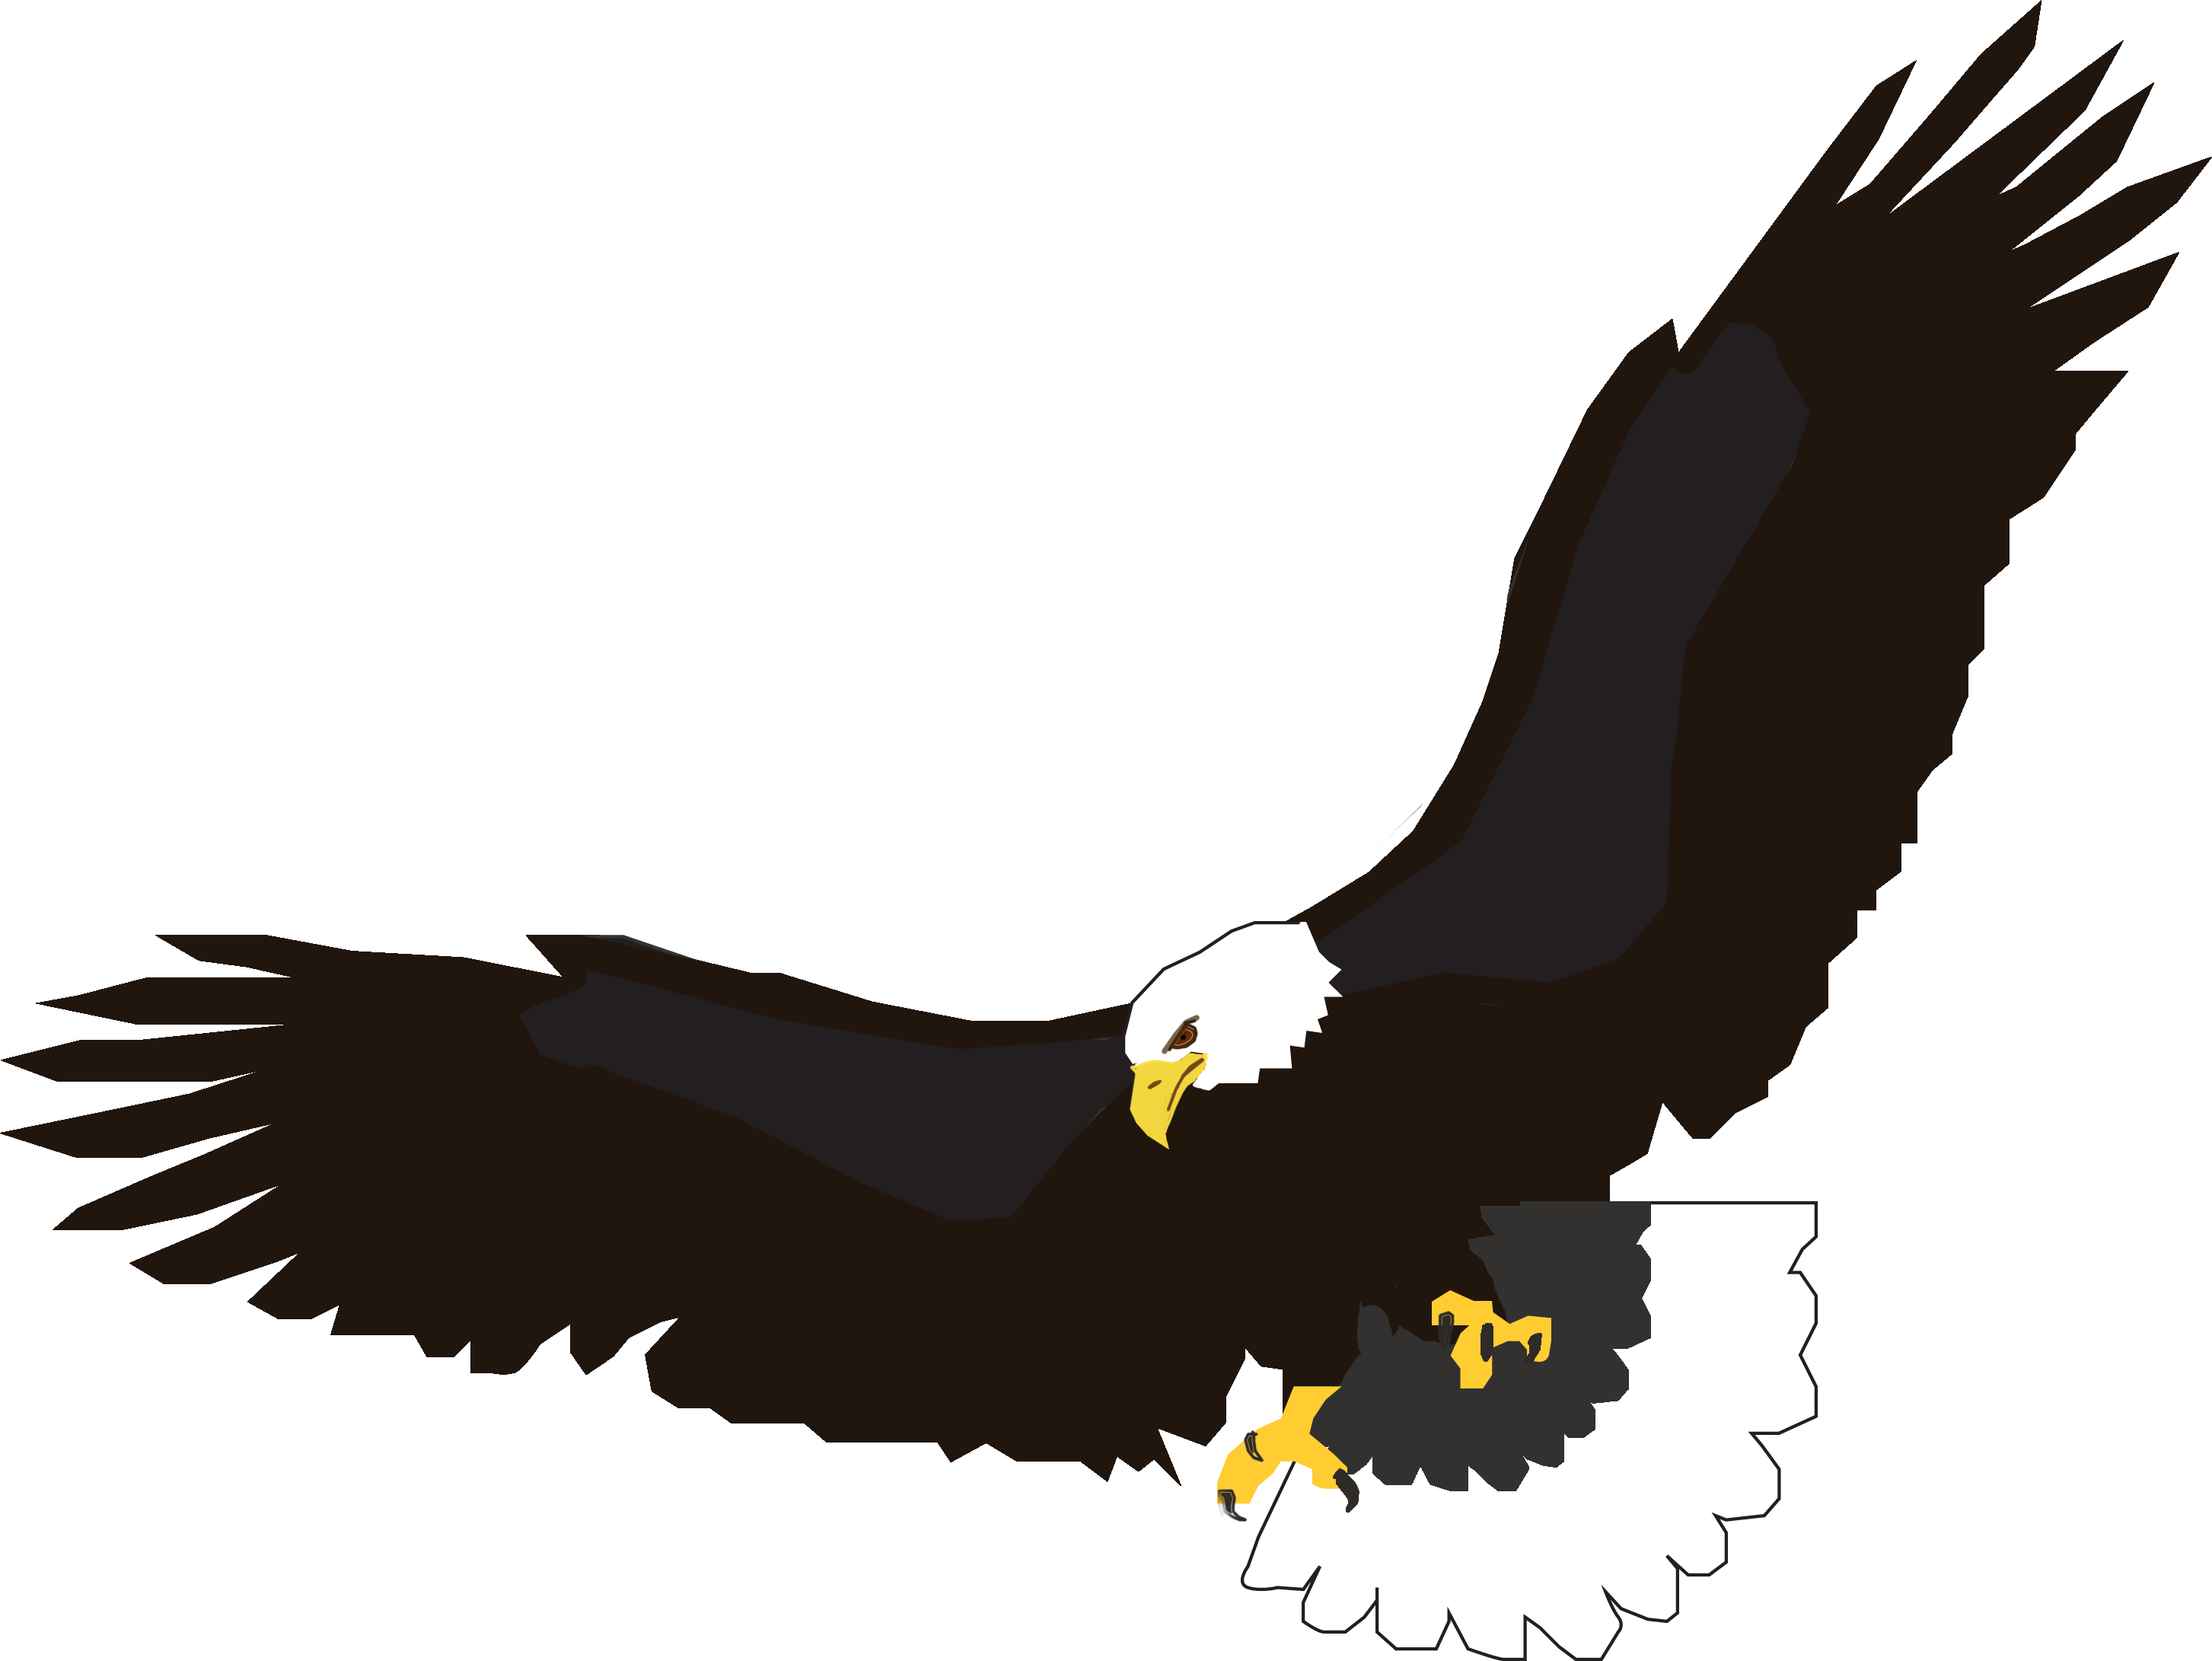 61 Images Of Flying Eagle Clipart You Can Use These Free Cliparts